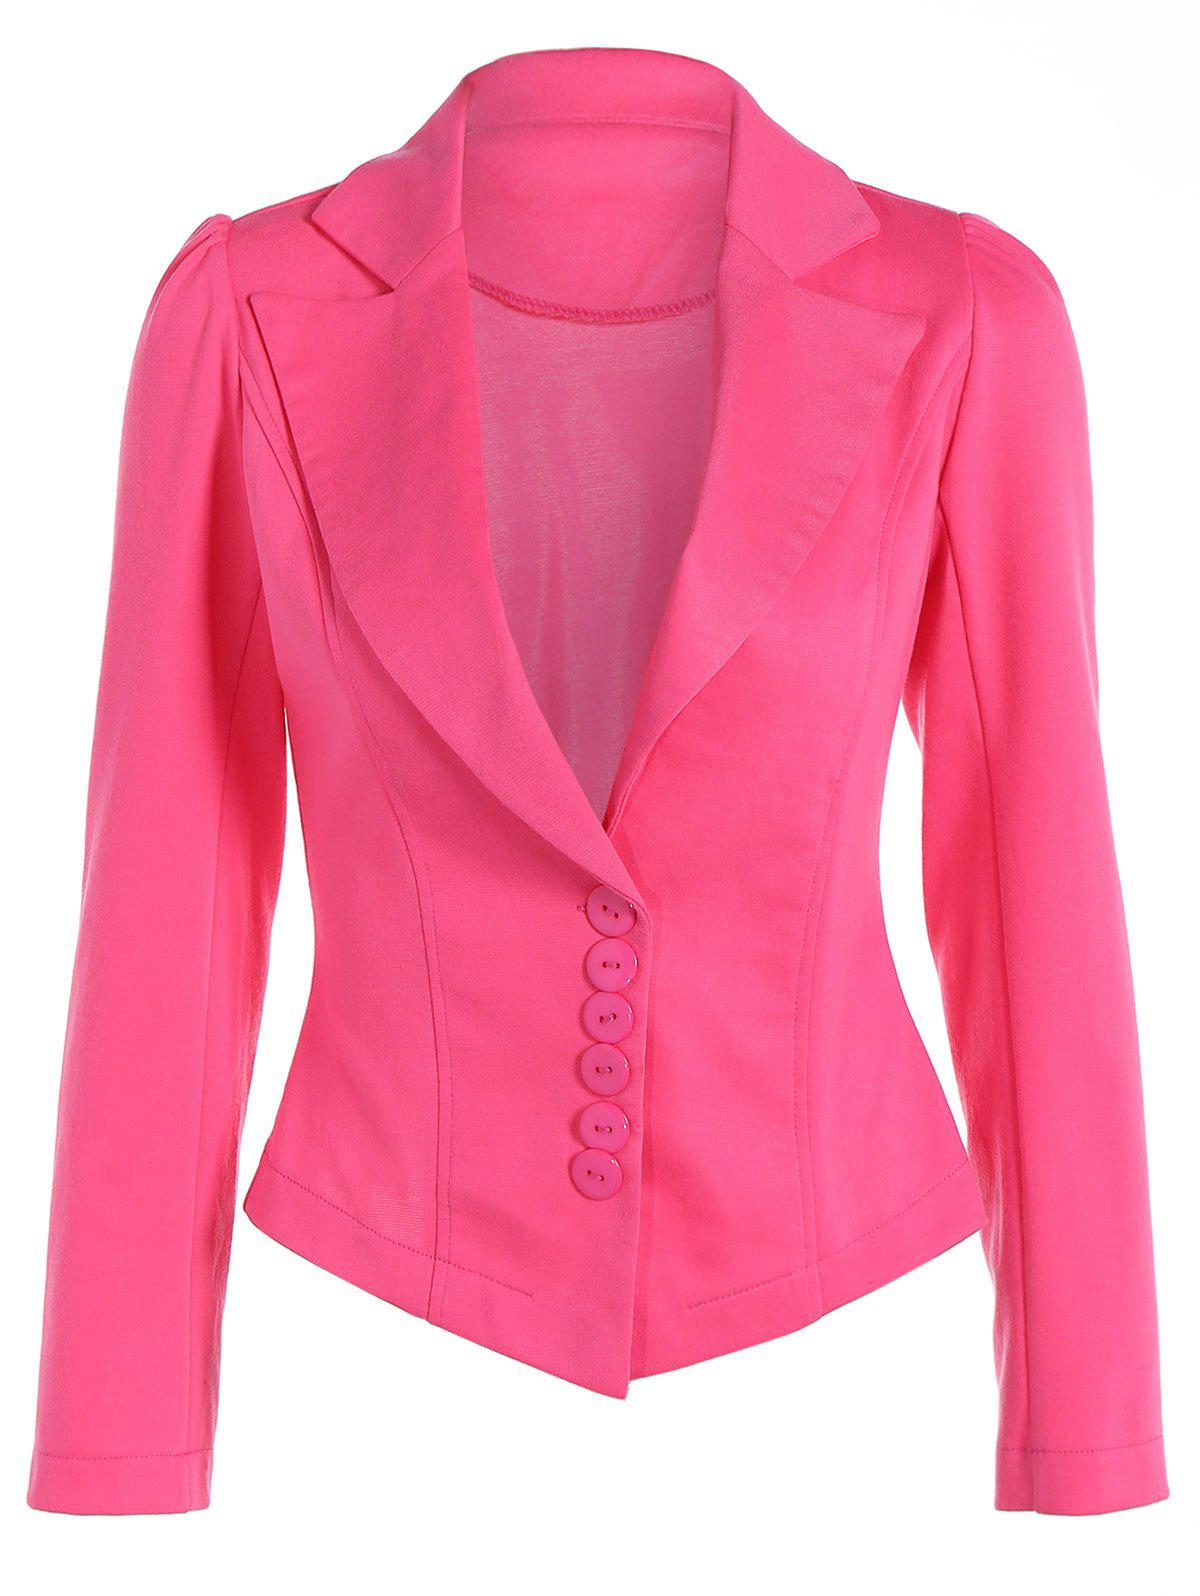 Asymmetric Lapel Single Breasted Blazer - DEEP PINK S